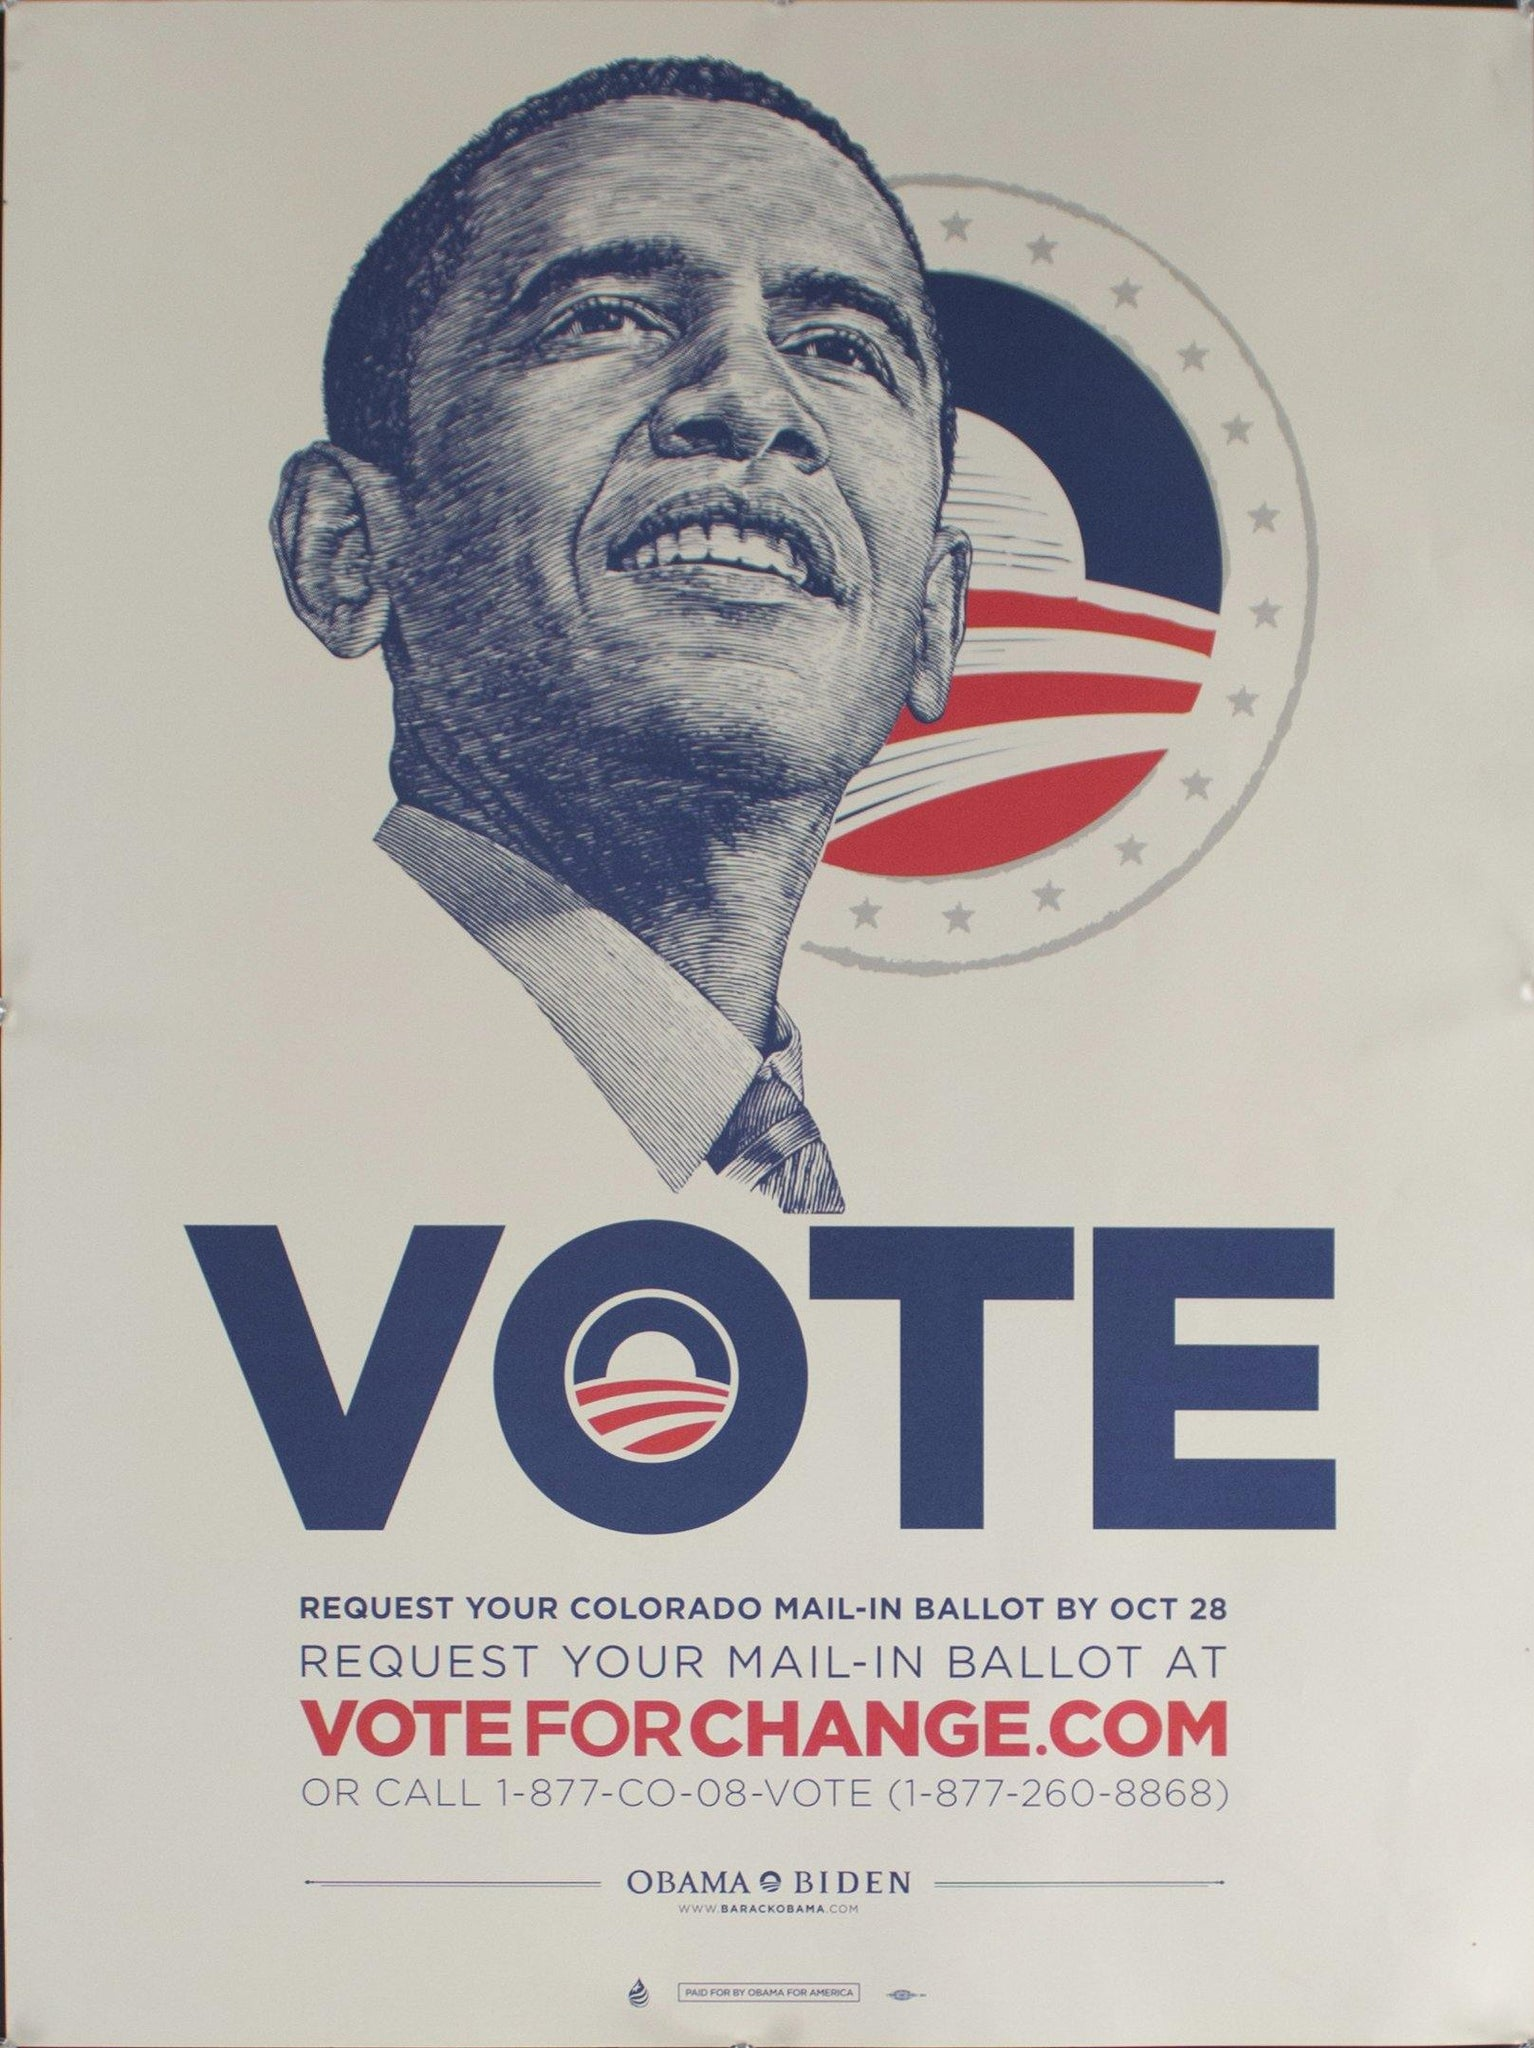 2008 Vote Obama-Biden | Request Your Colorado Mail-in Ballot by Oct 28 | voteforchange.com